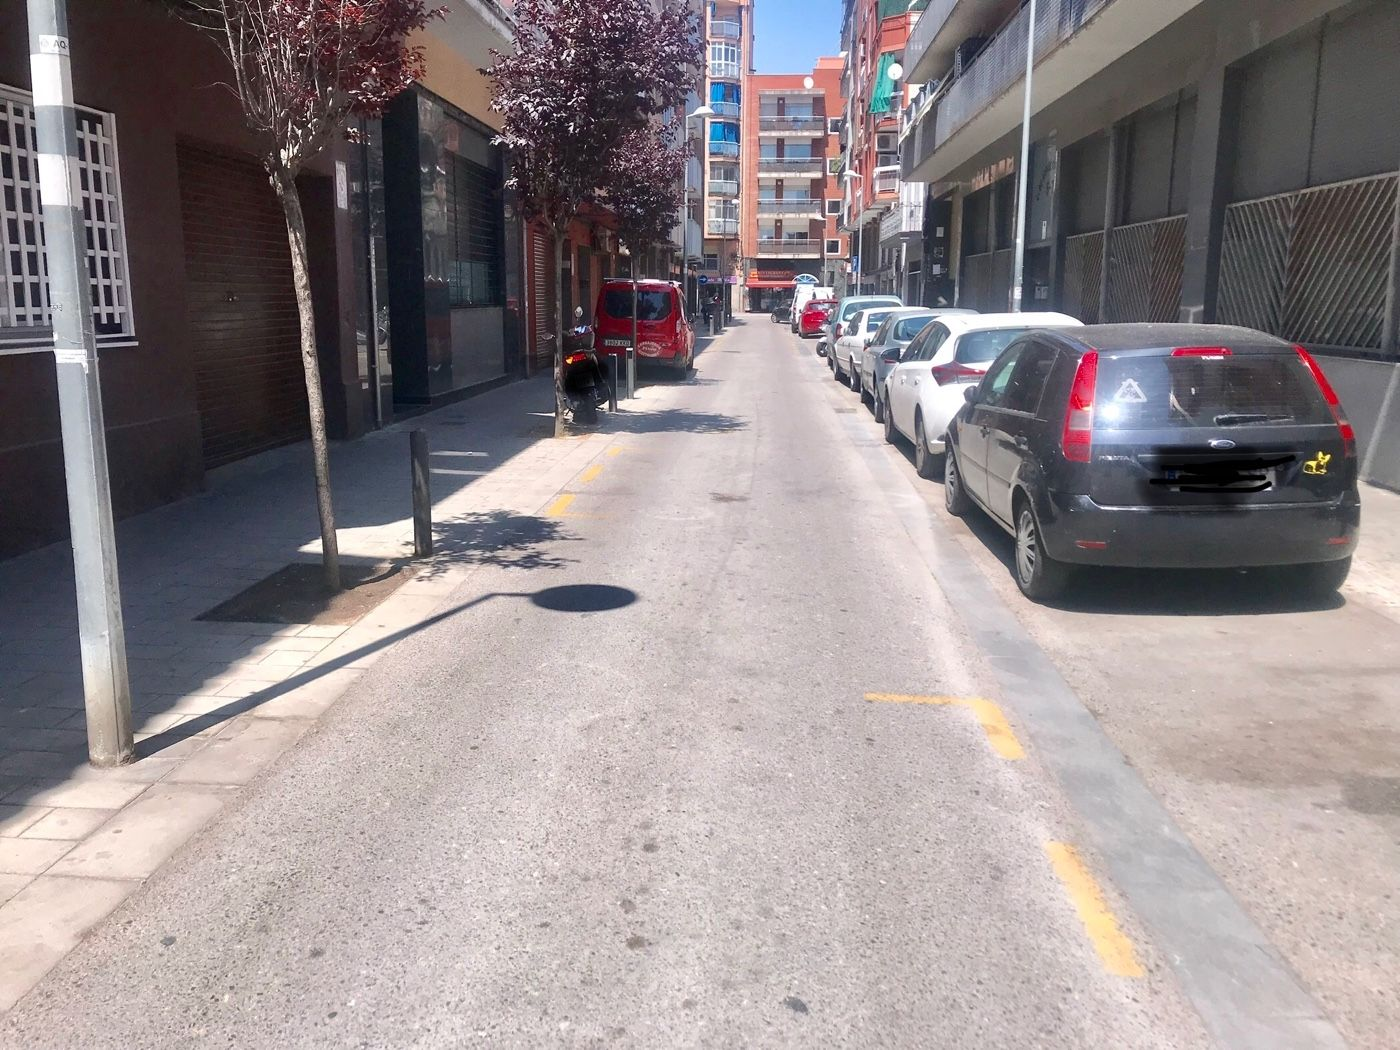 Parking coche  Carrer rafael de casanovas. Oportunidad unica!!!